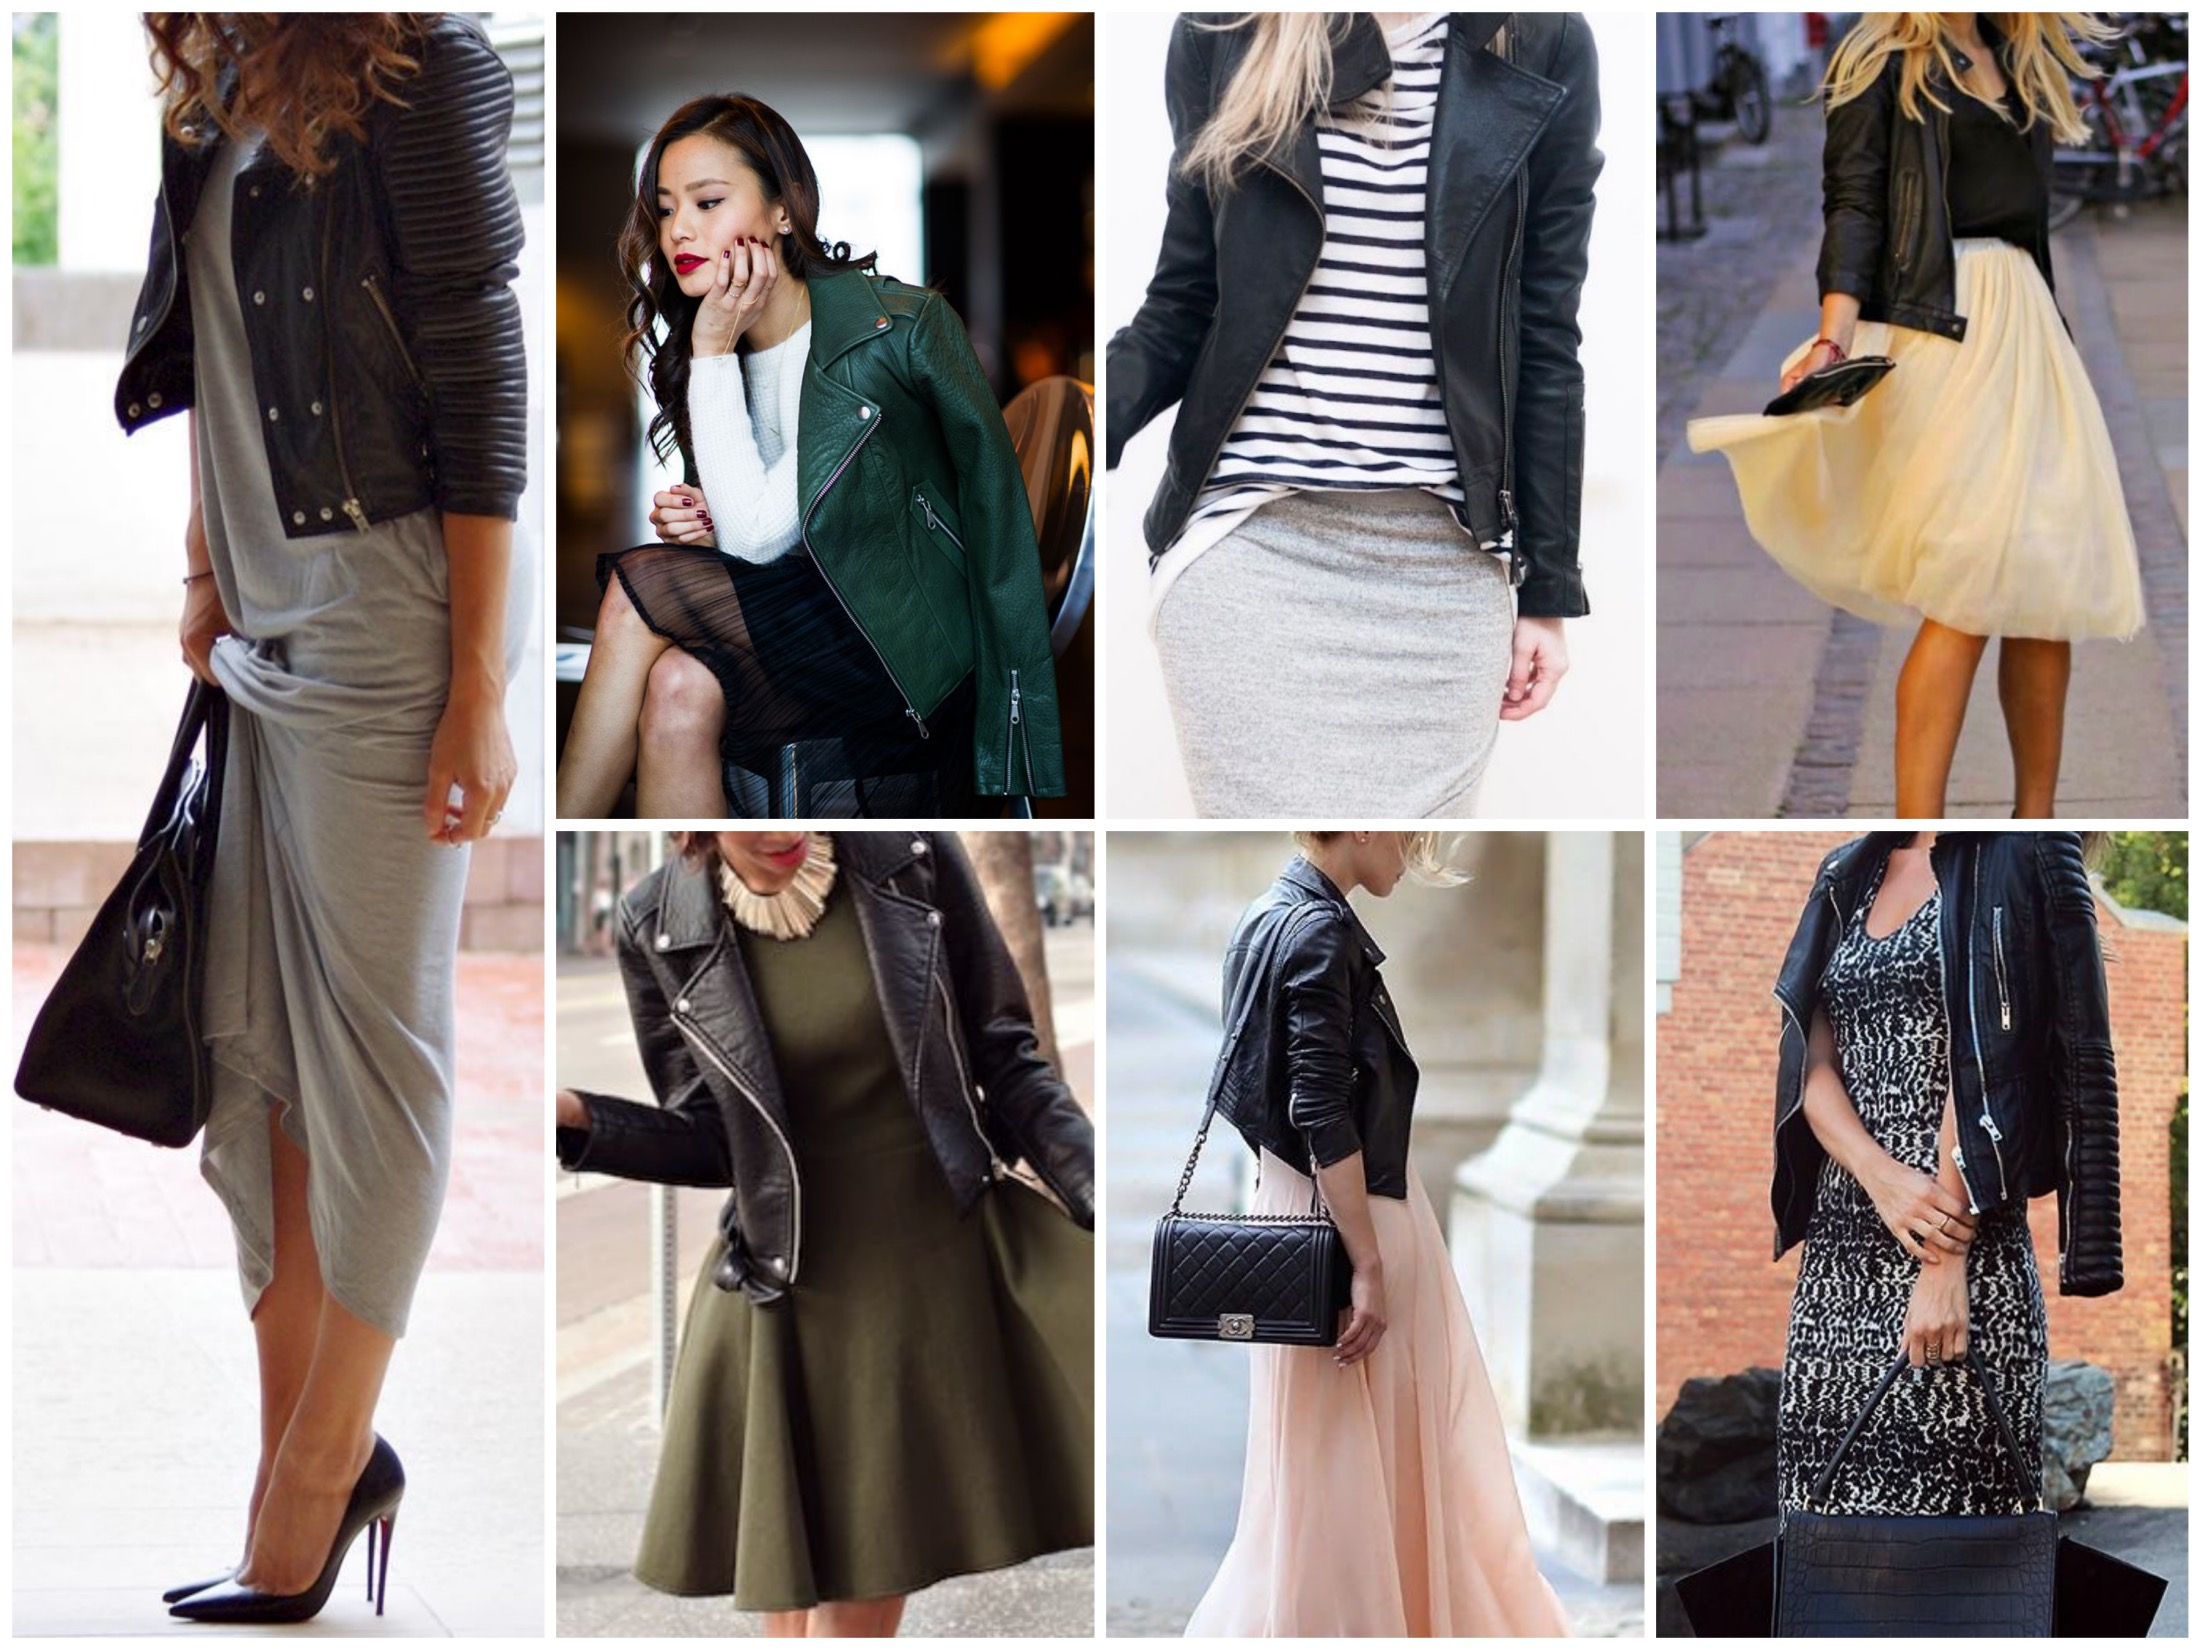 Wear your moto jacket with dresses & skirts for a feminine look